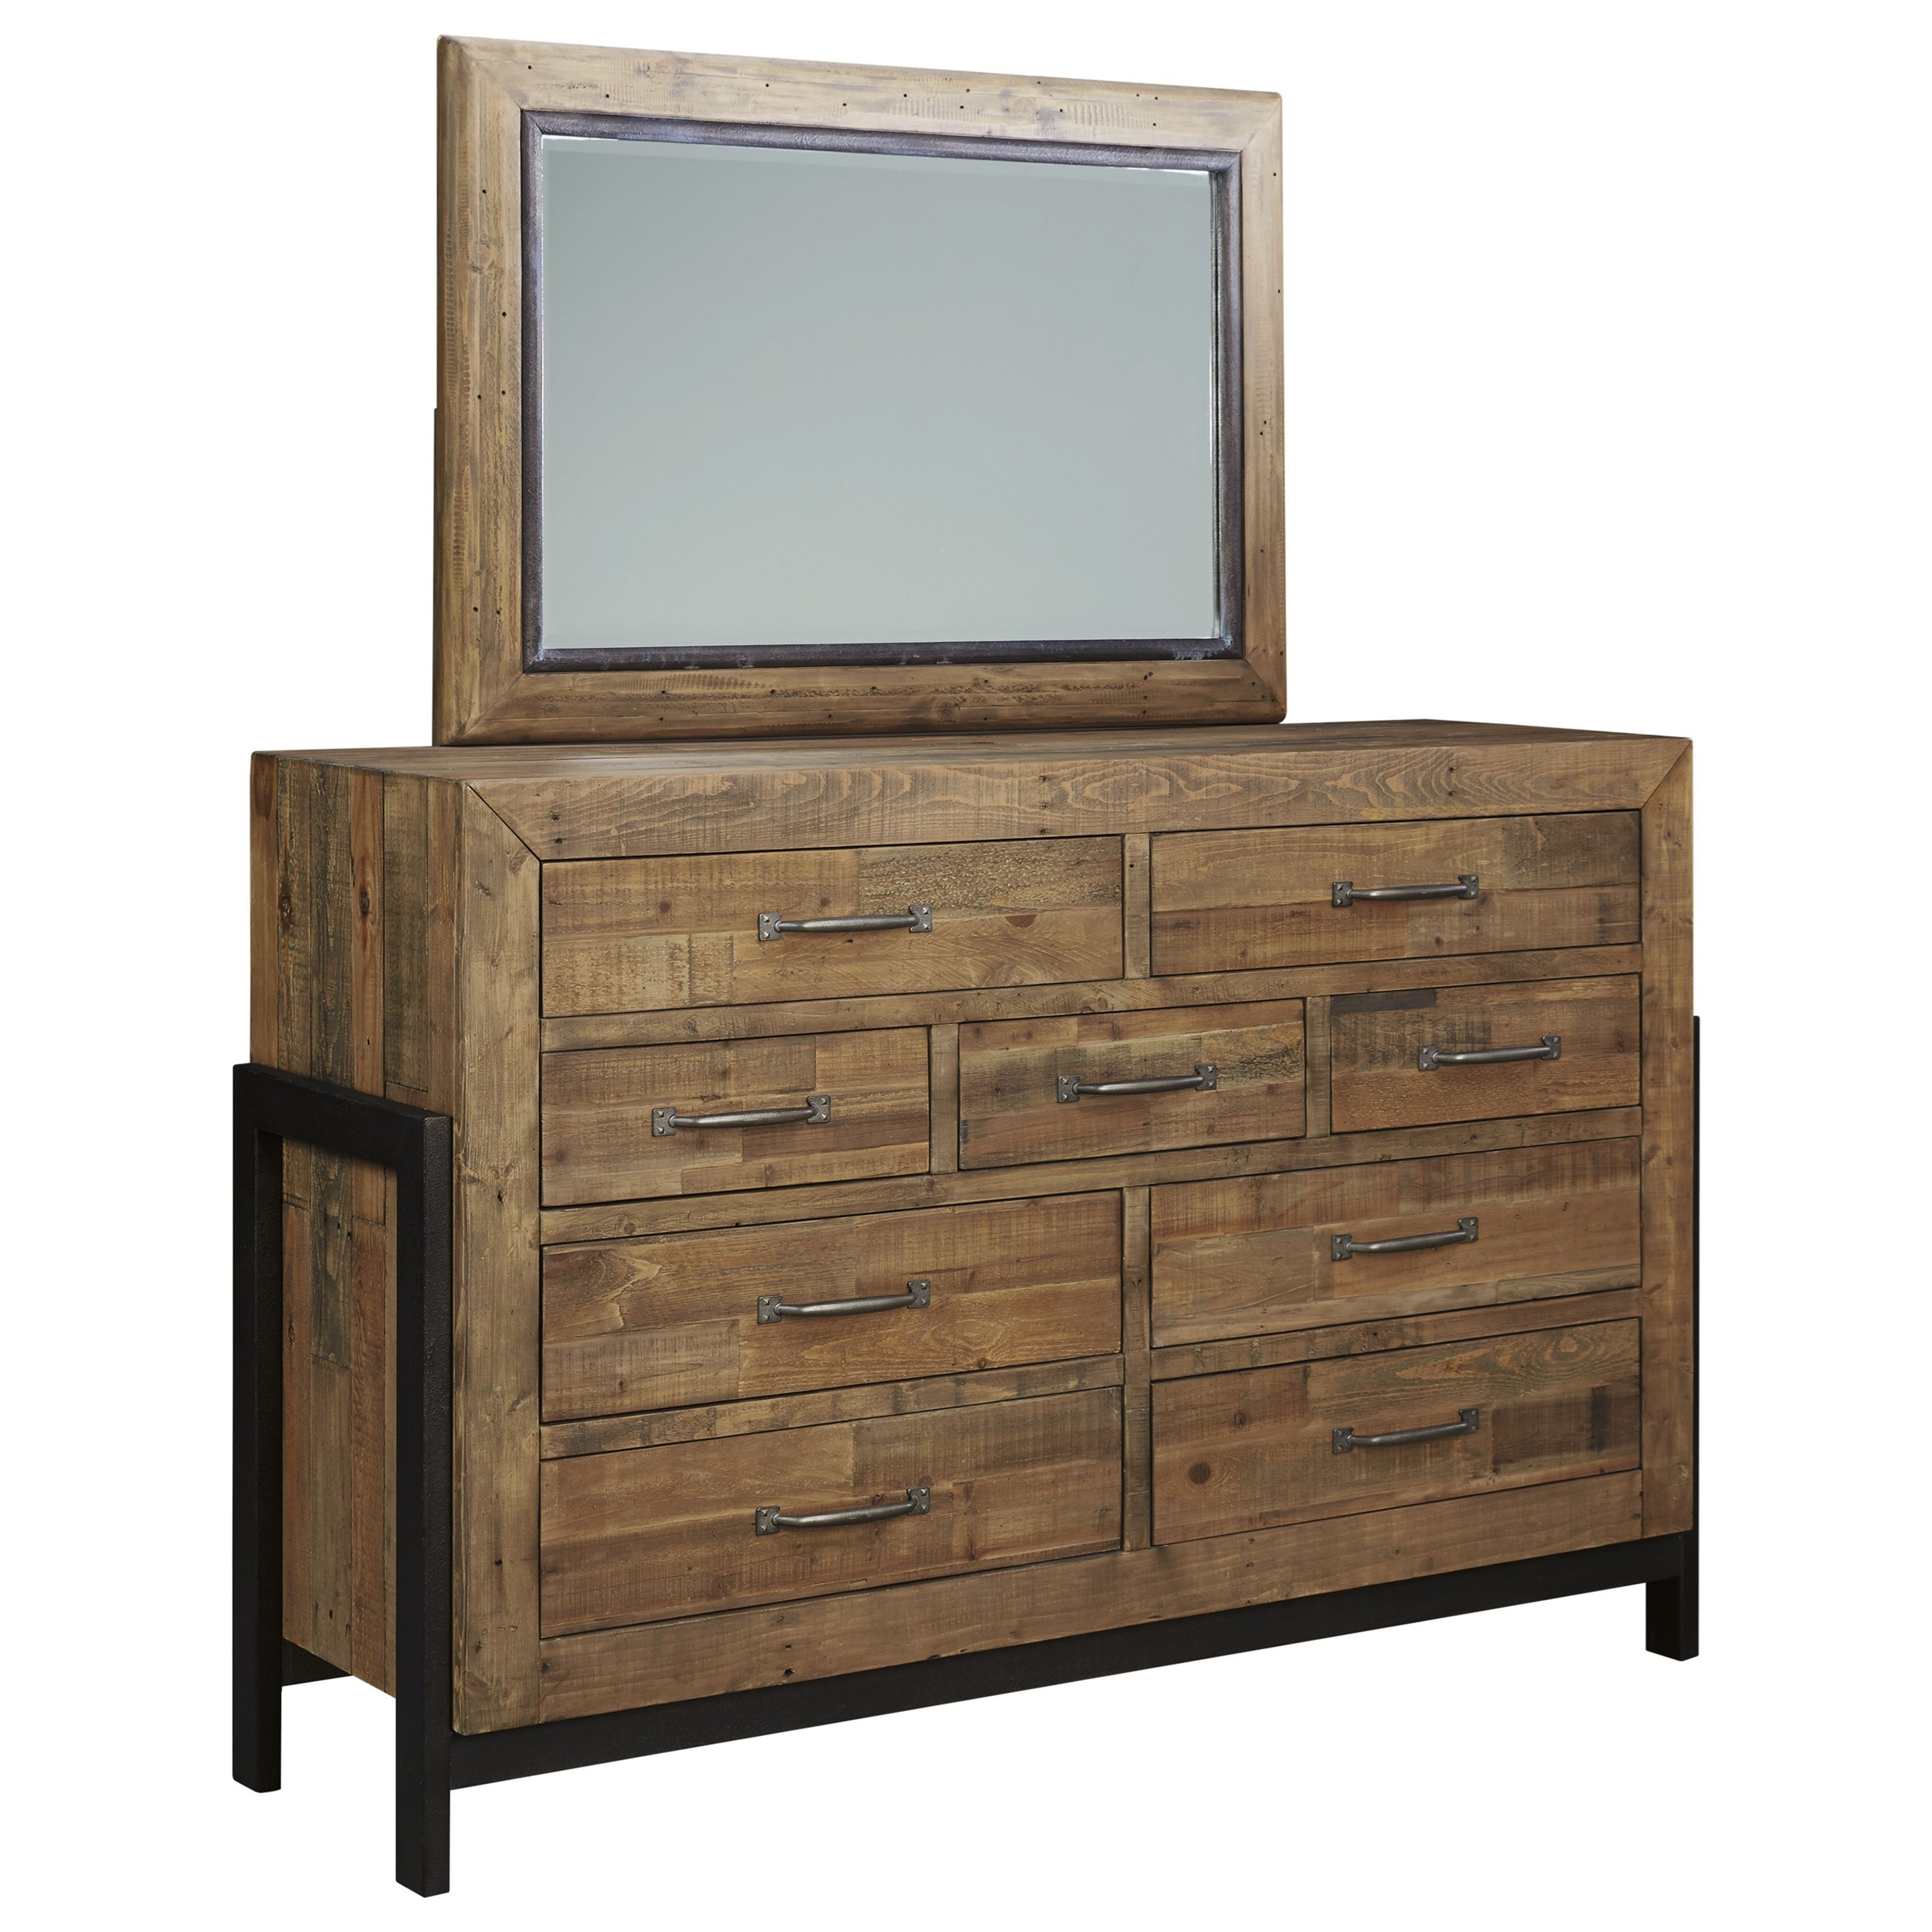 Sommerford Dresser & Bedroom Mirror by Signature Design by Ashley at Northeast Factory Direct